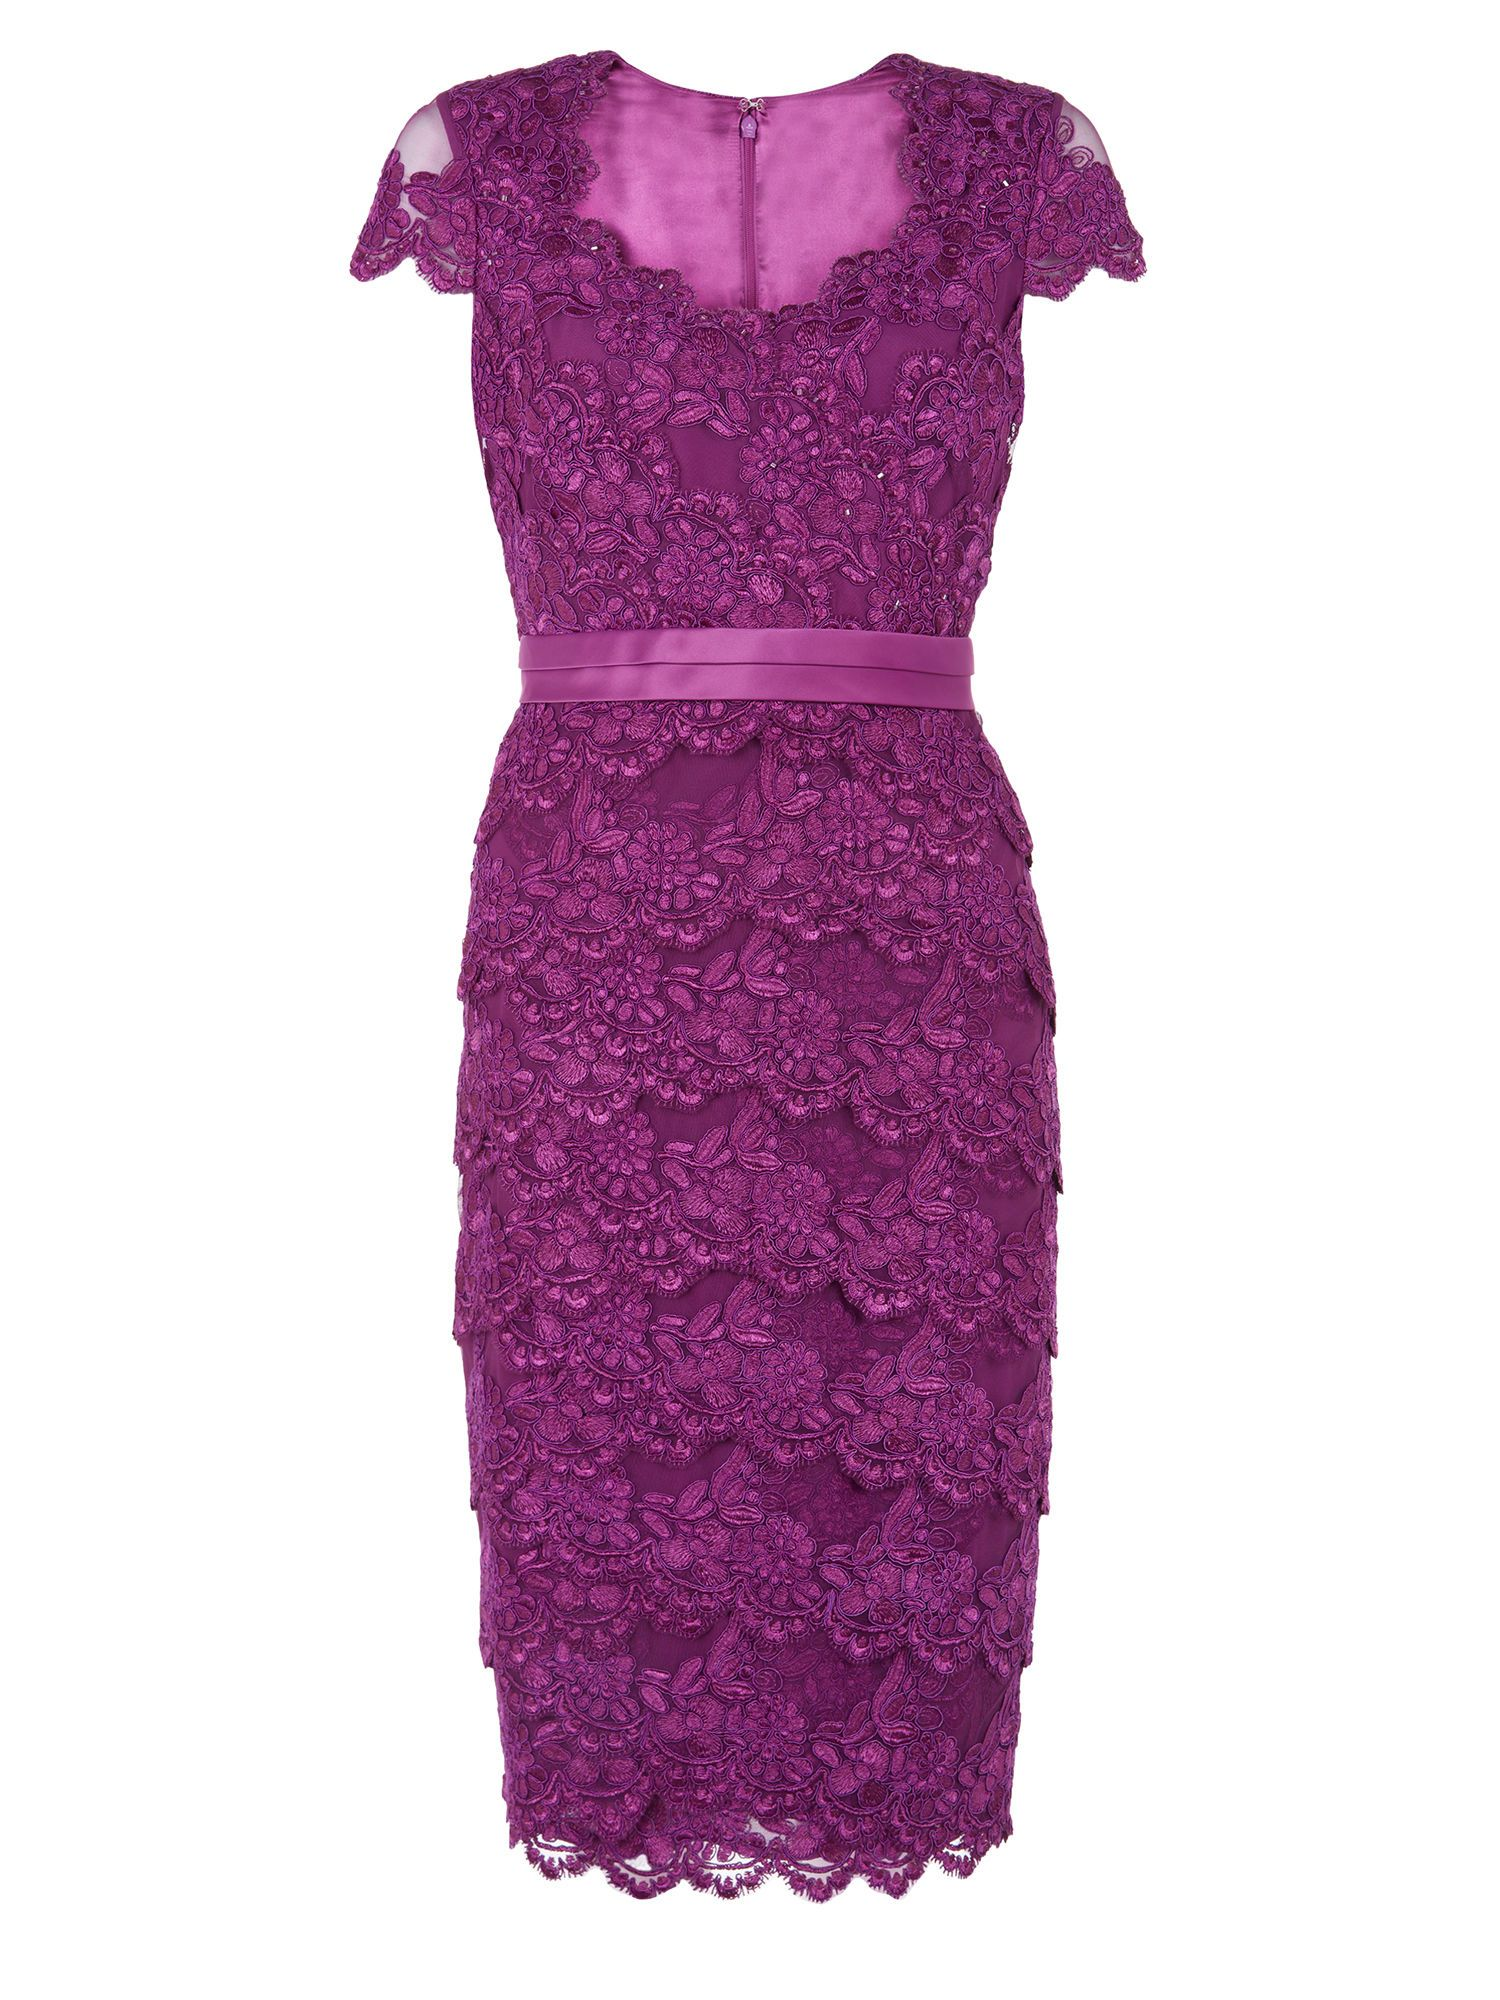 Bright pink dress for wedding guest  Purple Mother of the Bride Outfits u Purple Occasionwear Dresses